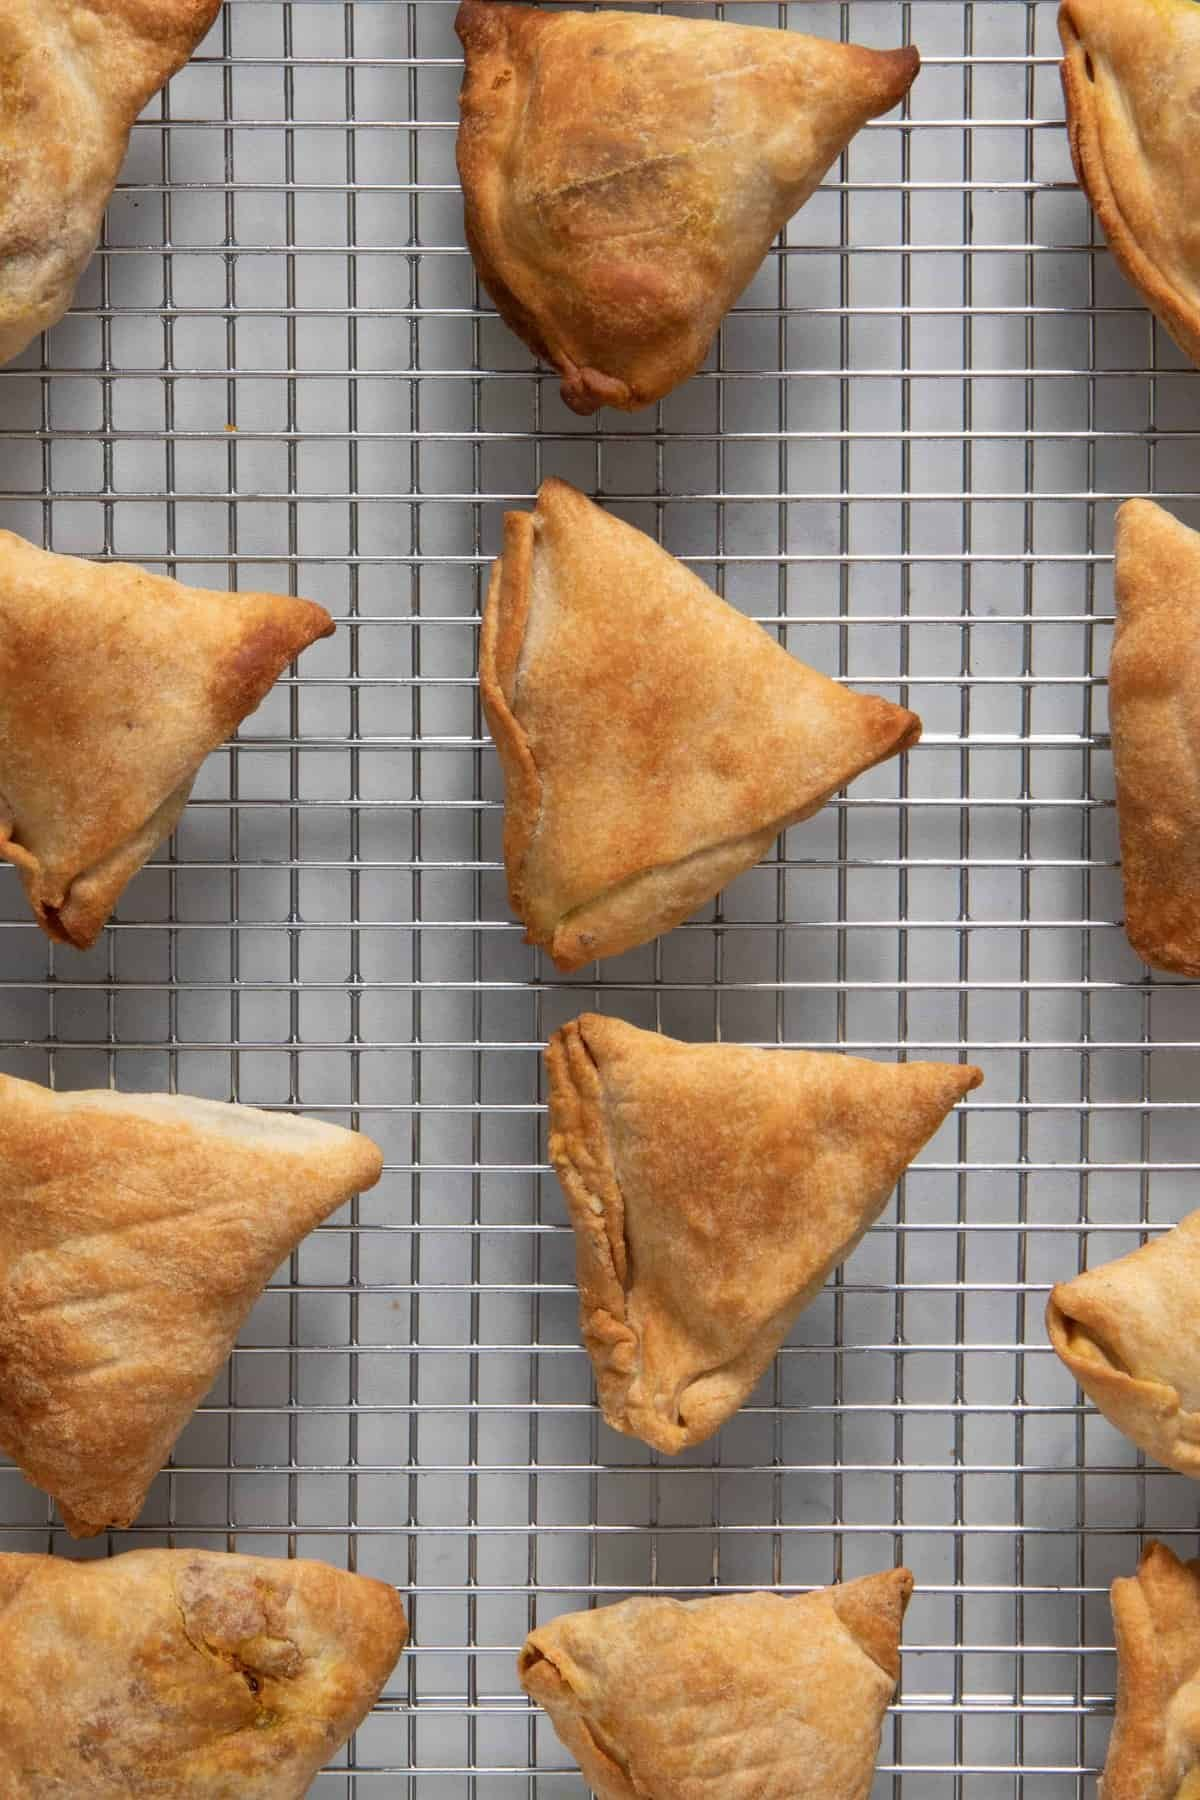 Noticed no difference between the air fryer samosa and the baked samosa - so try either version!